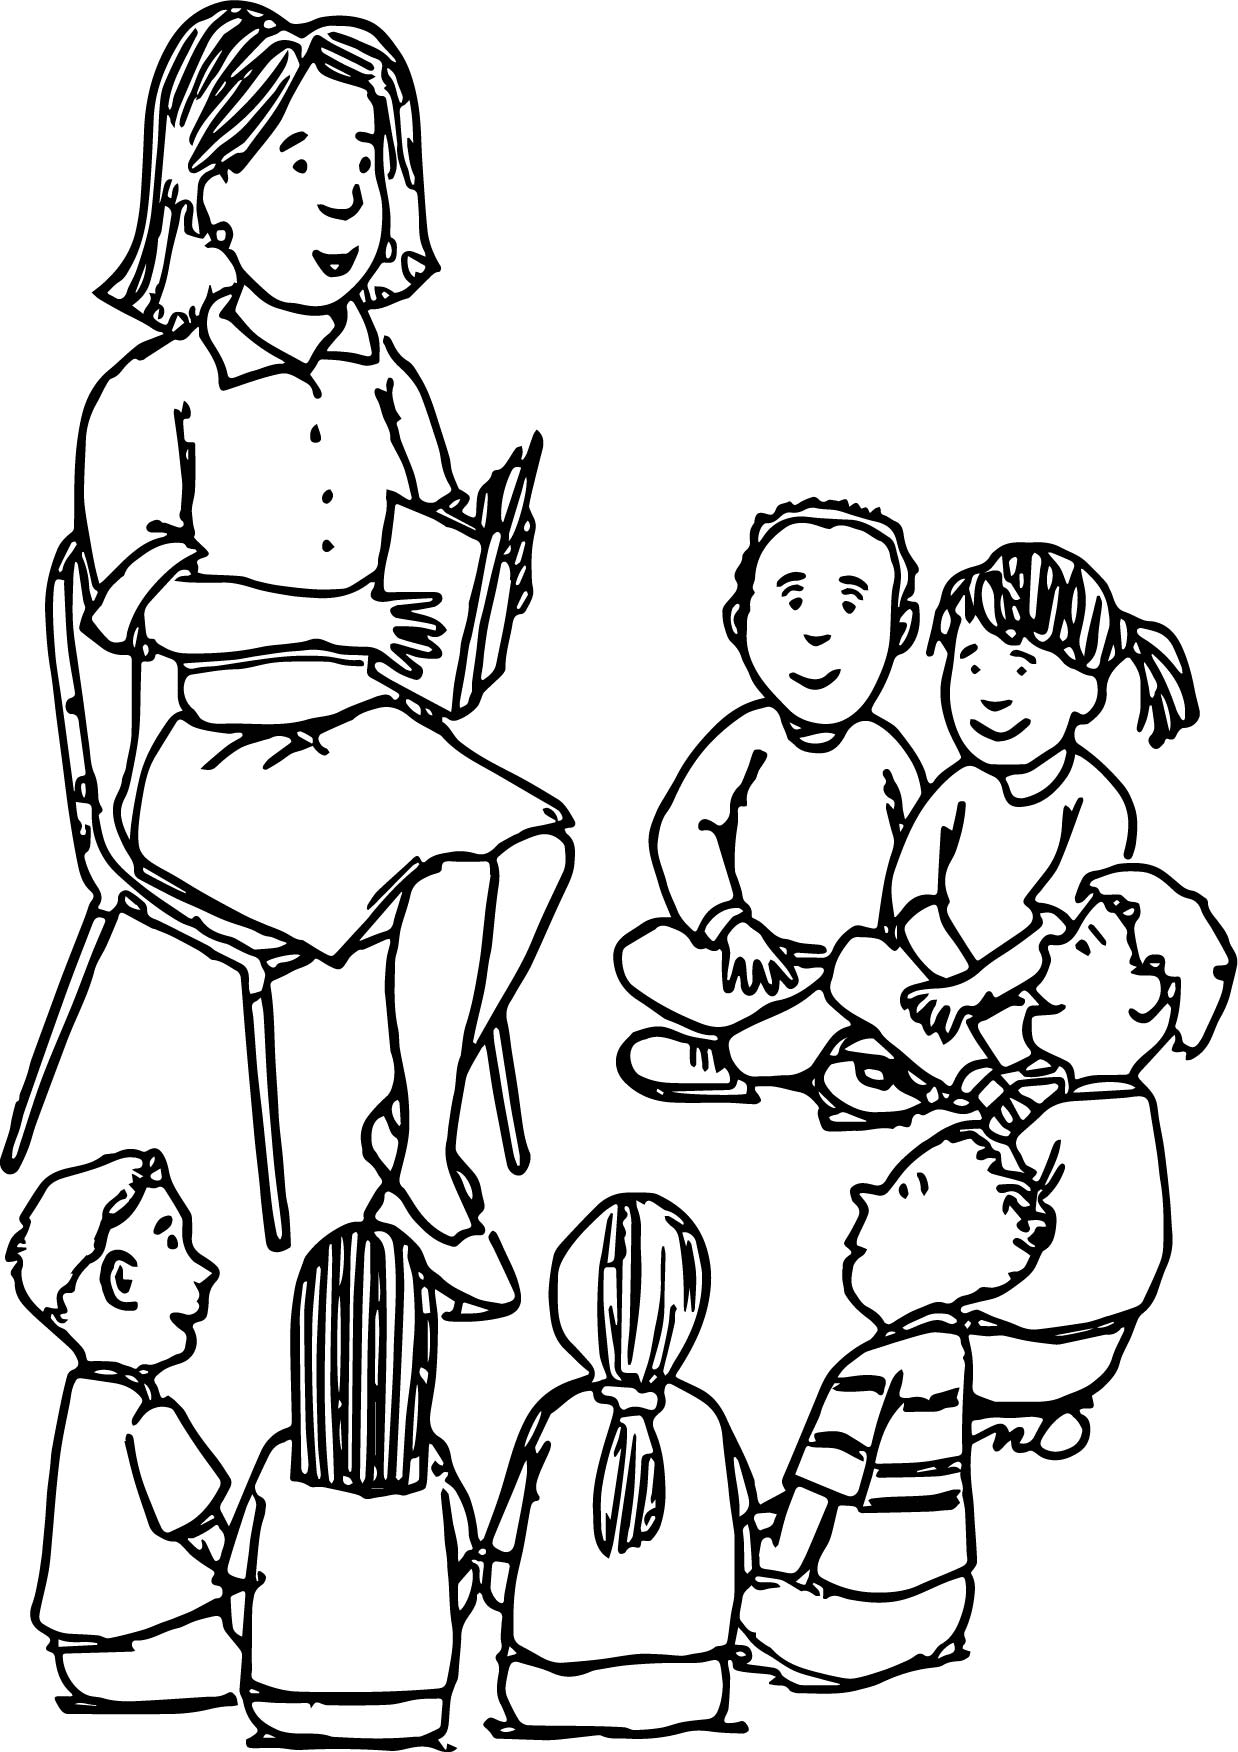 Reading Teacher All Student Coloring Page